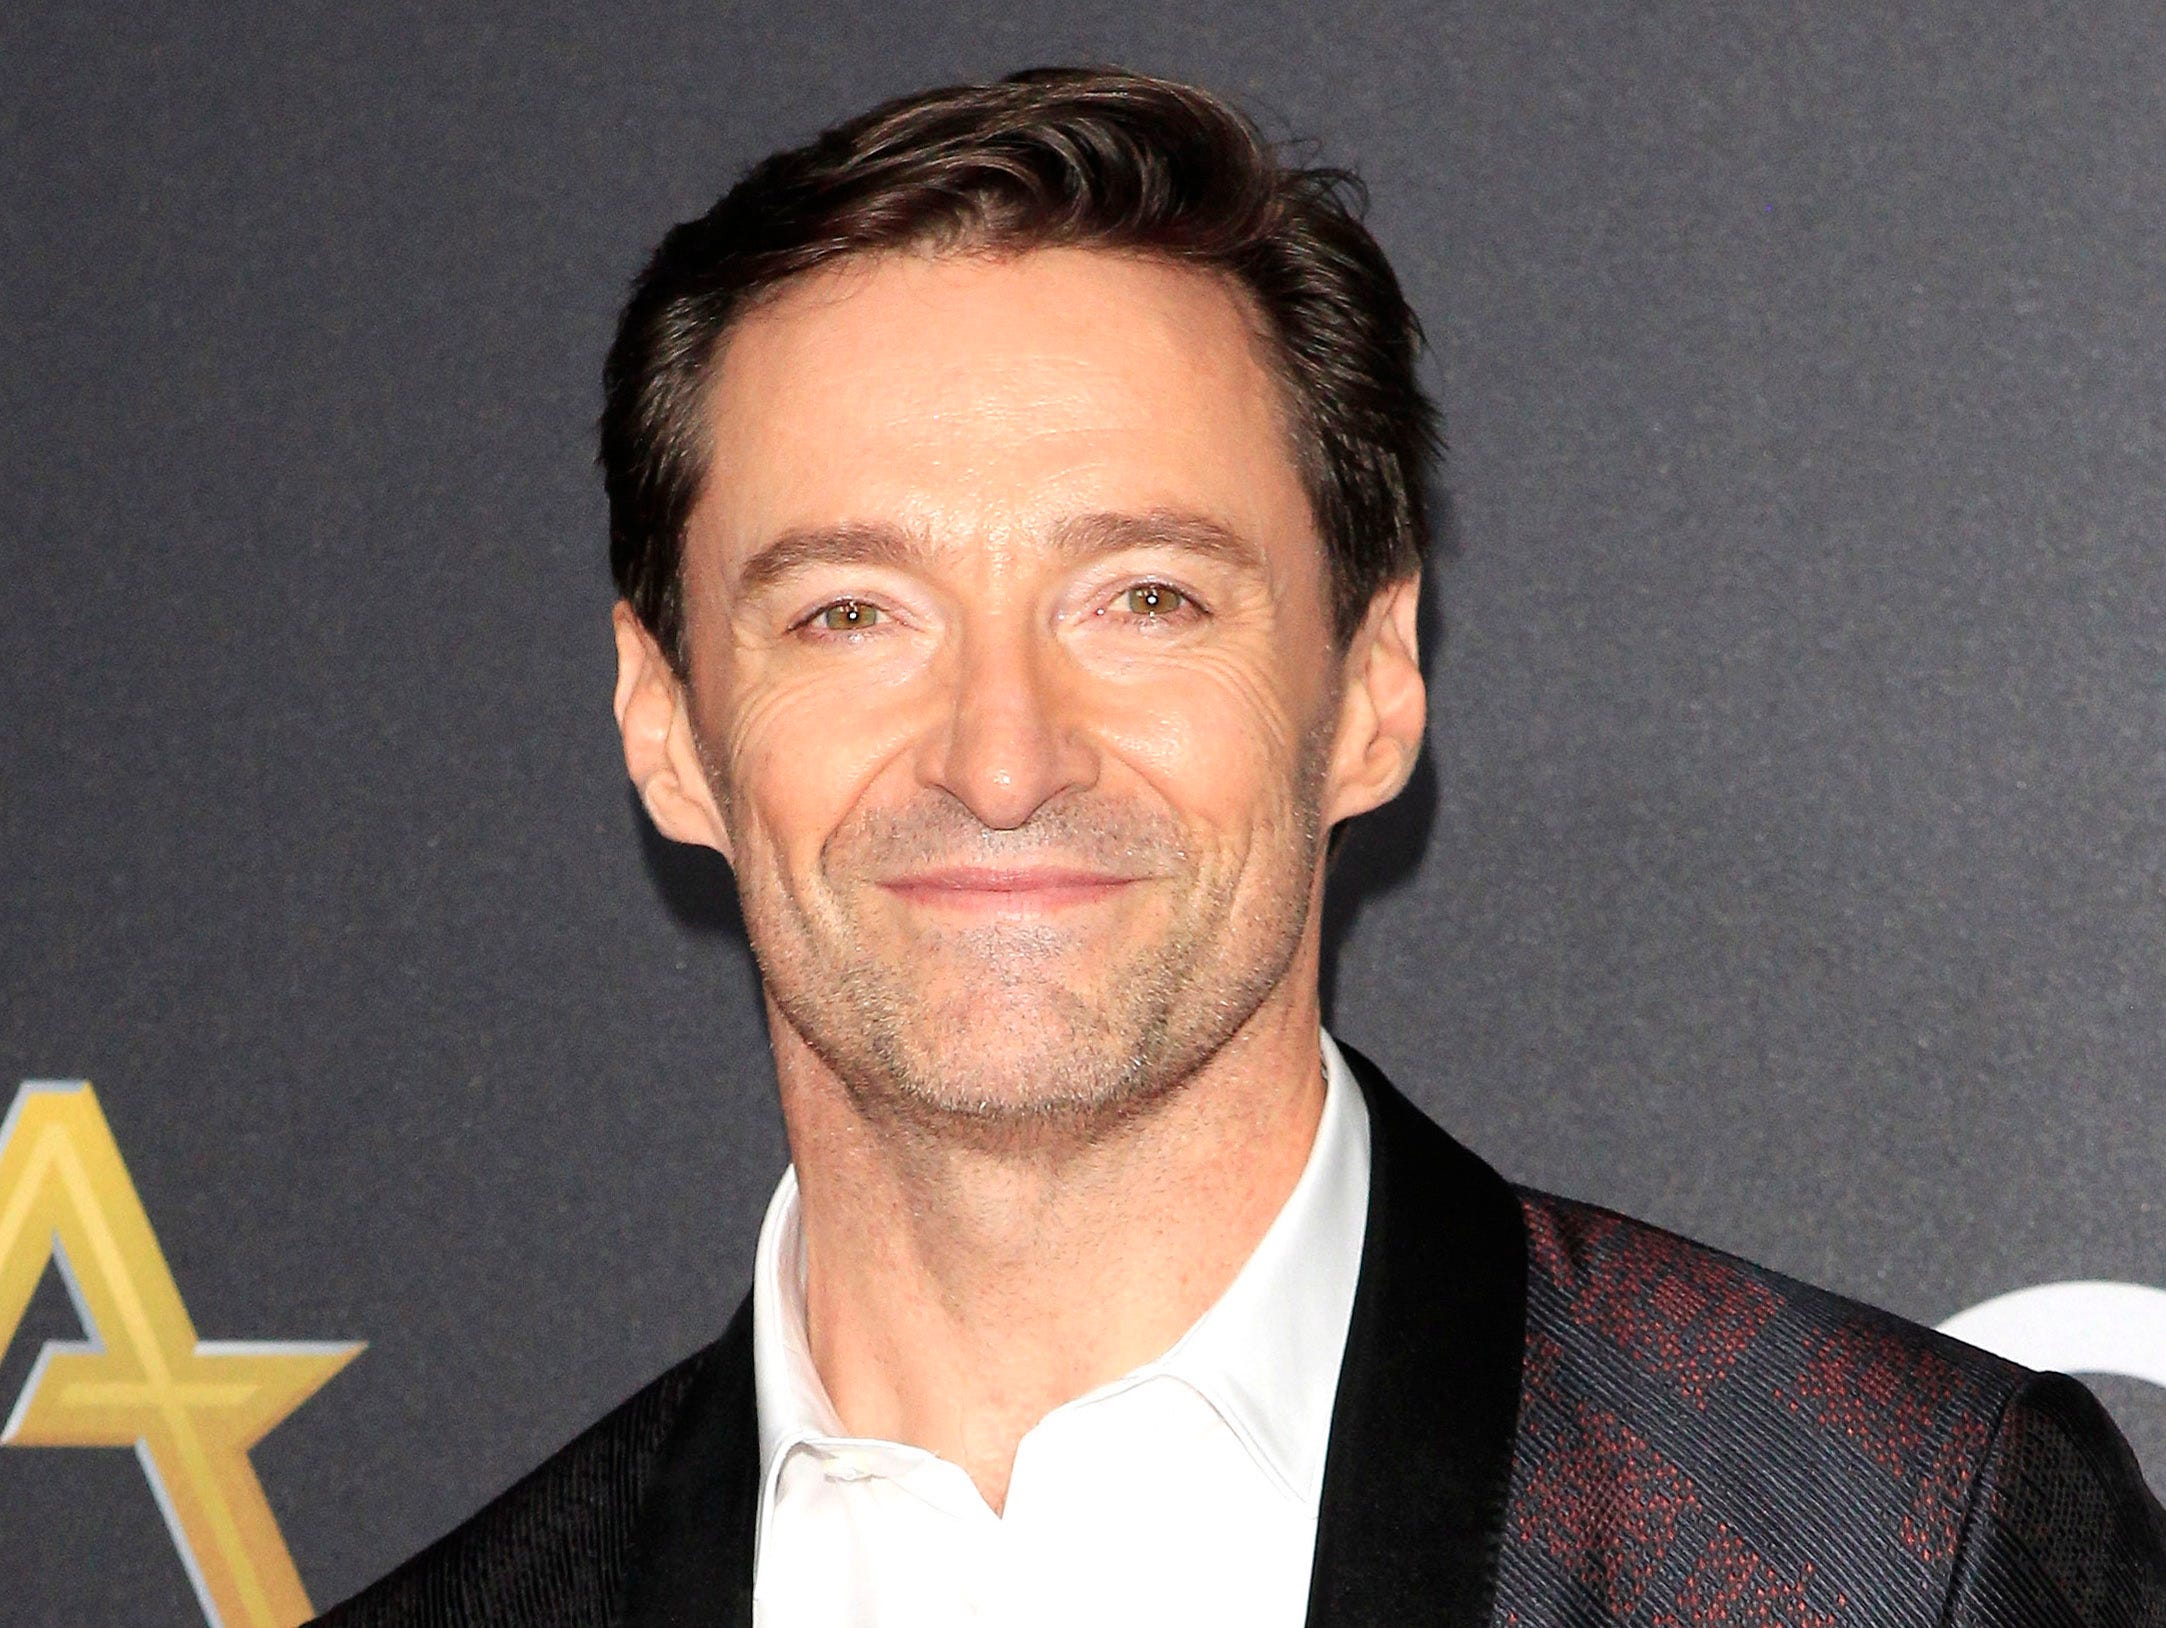 epa07142221 Australian actor Hugh Jackman arriving for the 22nd Annual Hollywood Film Awards at the Beverly Hilton Hotel in Beverly Hills, California, USA, 04 November 2018.  EPA-EFE/NINA PROMMER ORG XMIT: NPX01